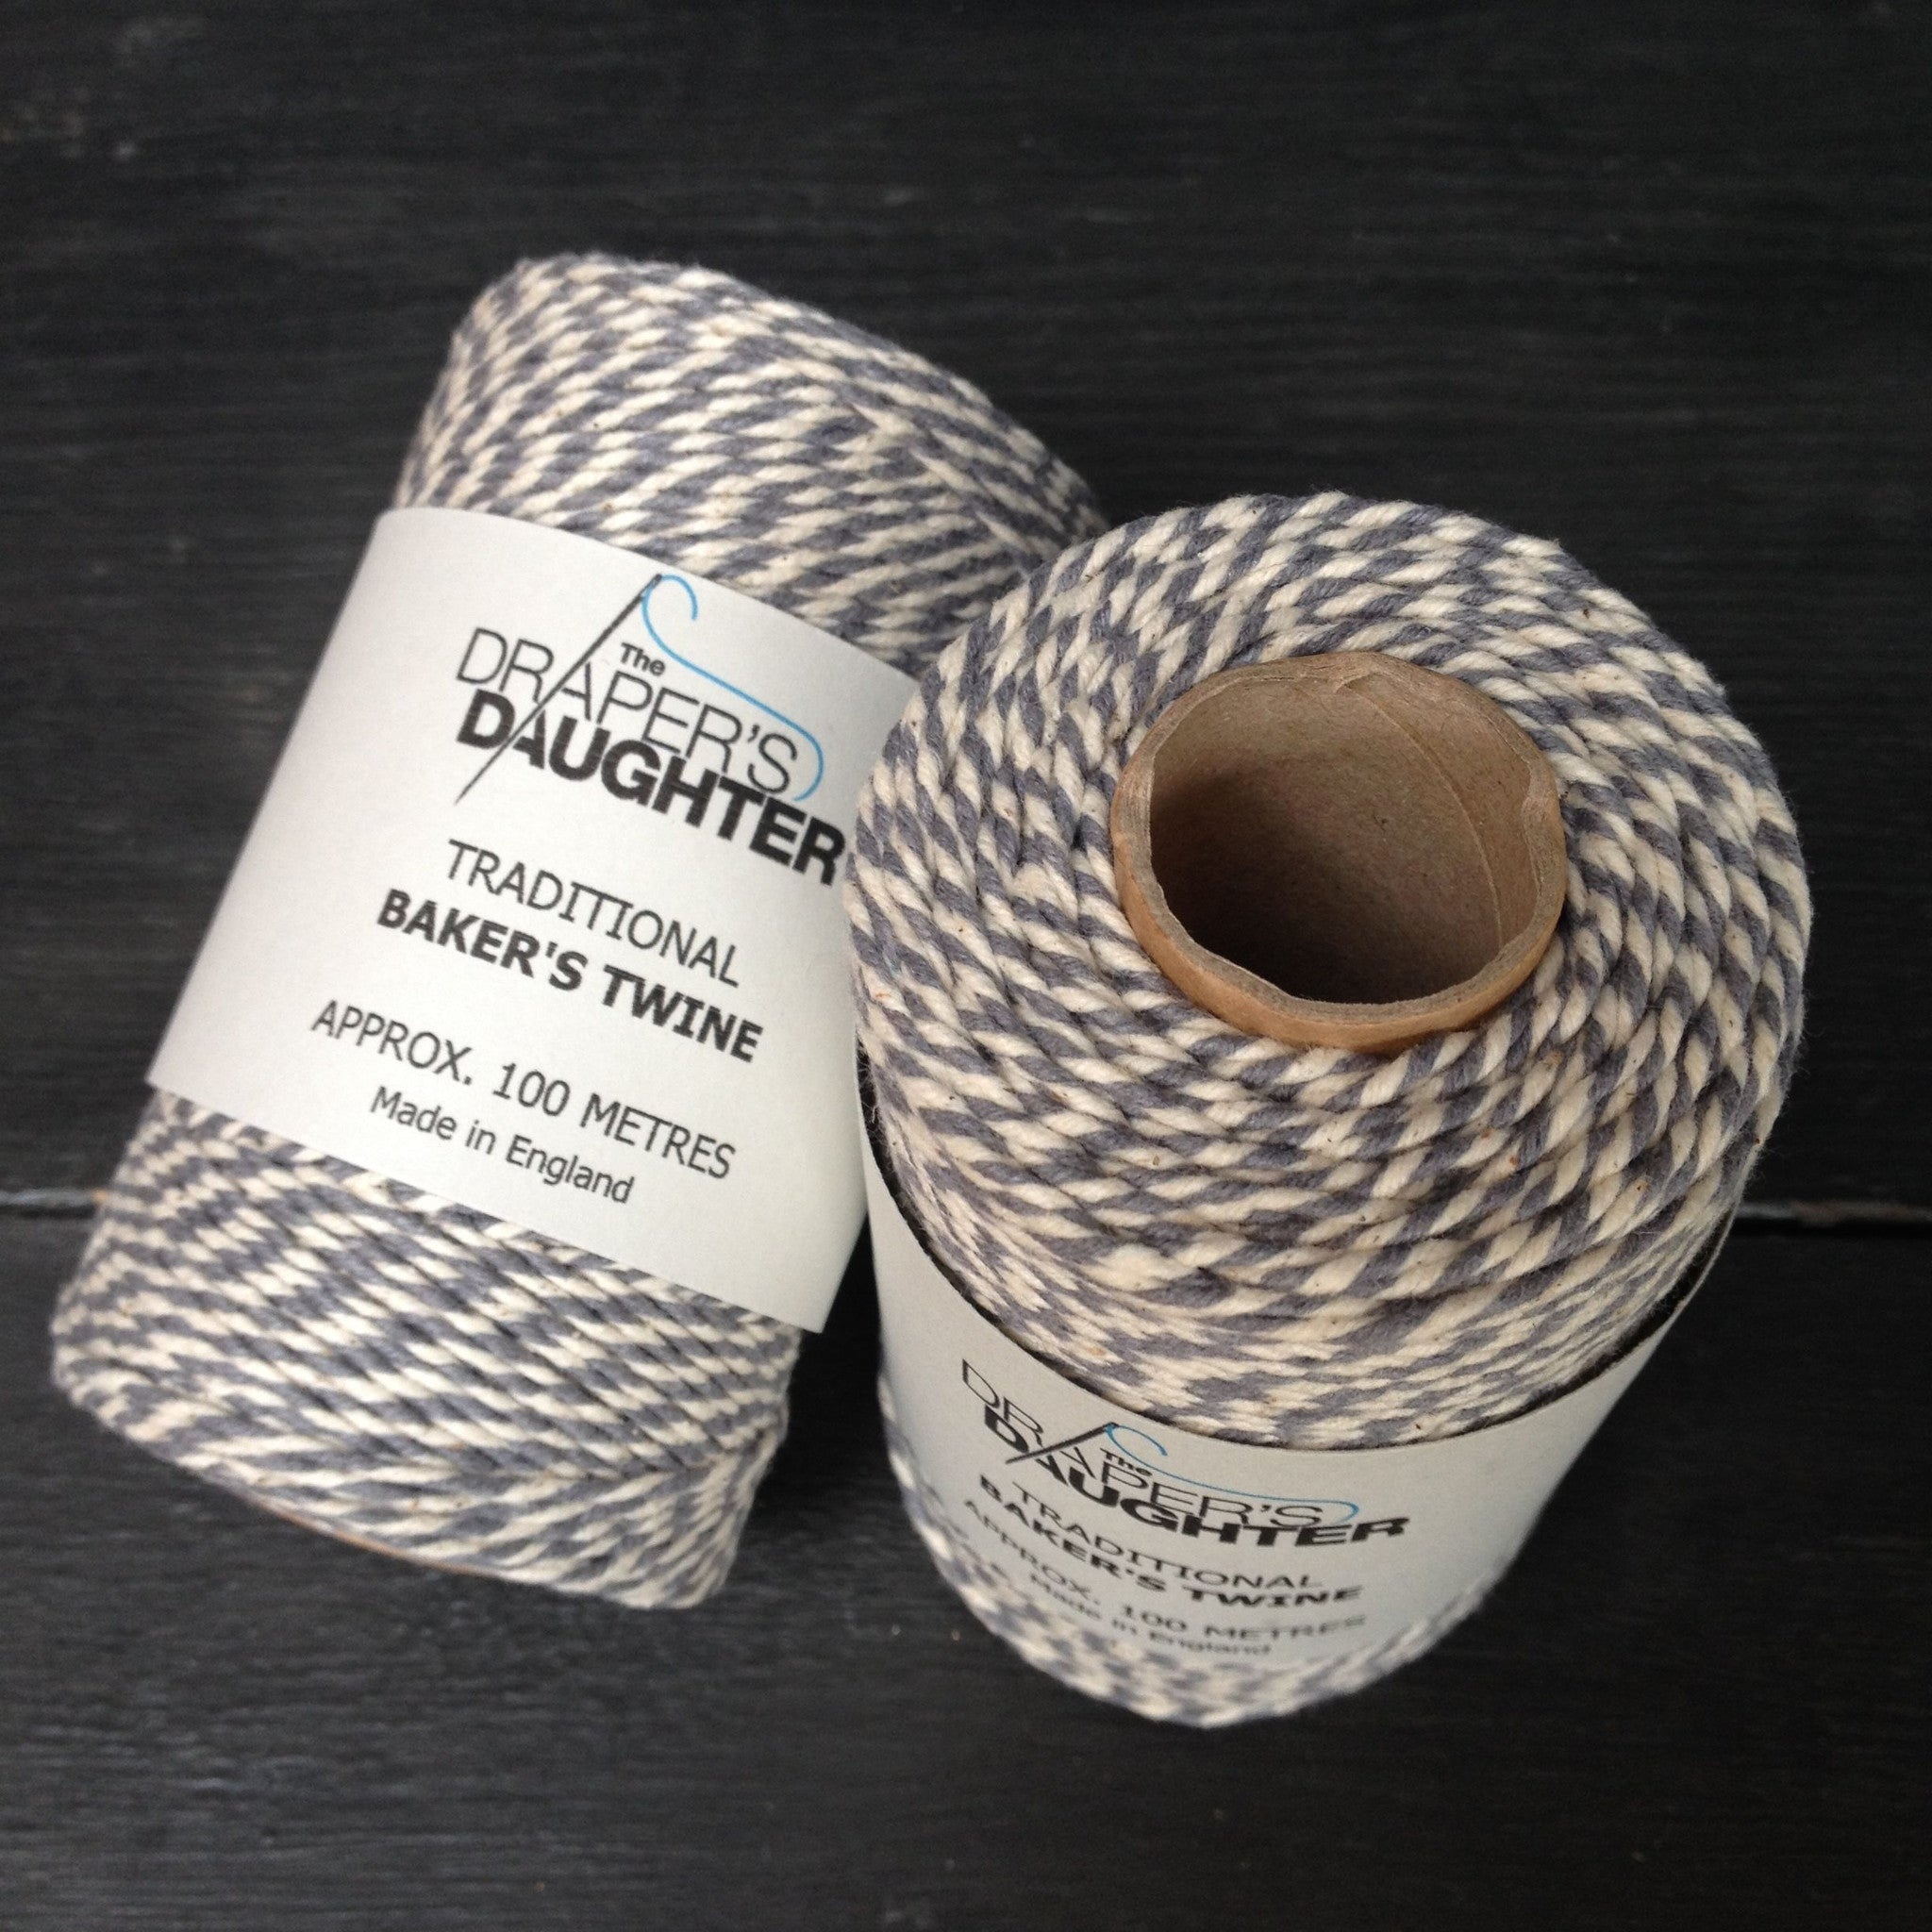 The Draper's Daughter Traditional Baker's Twine in Steel Grey